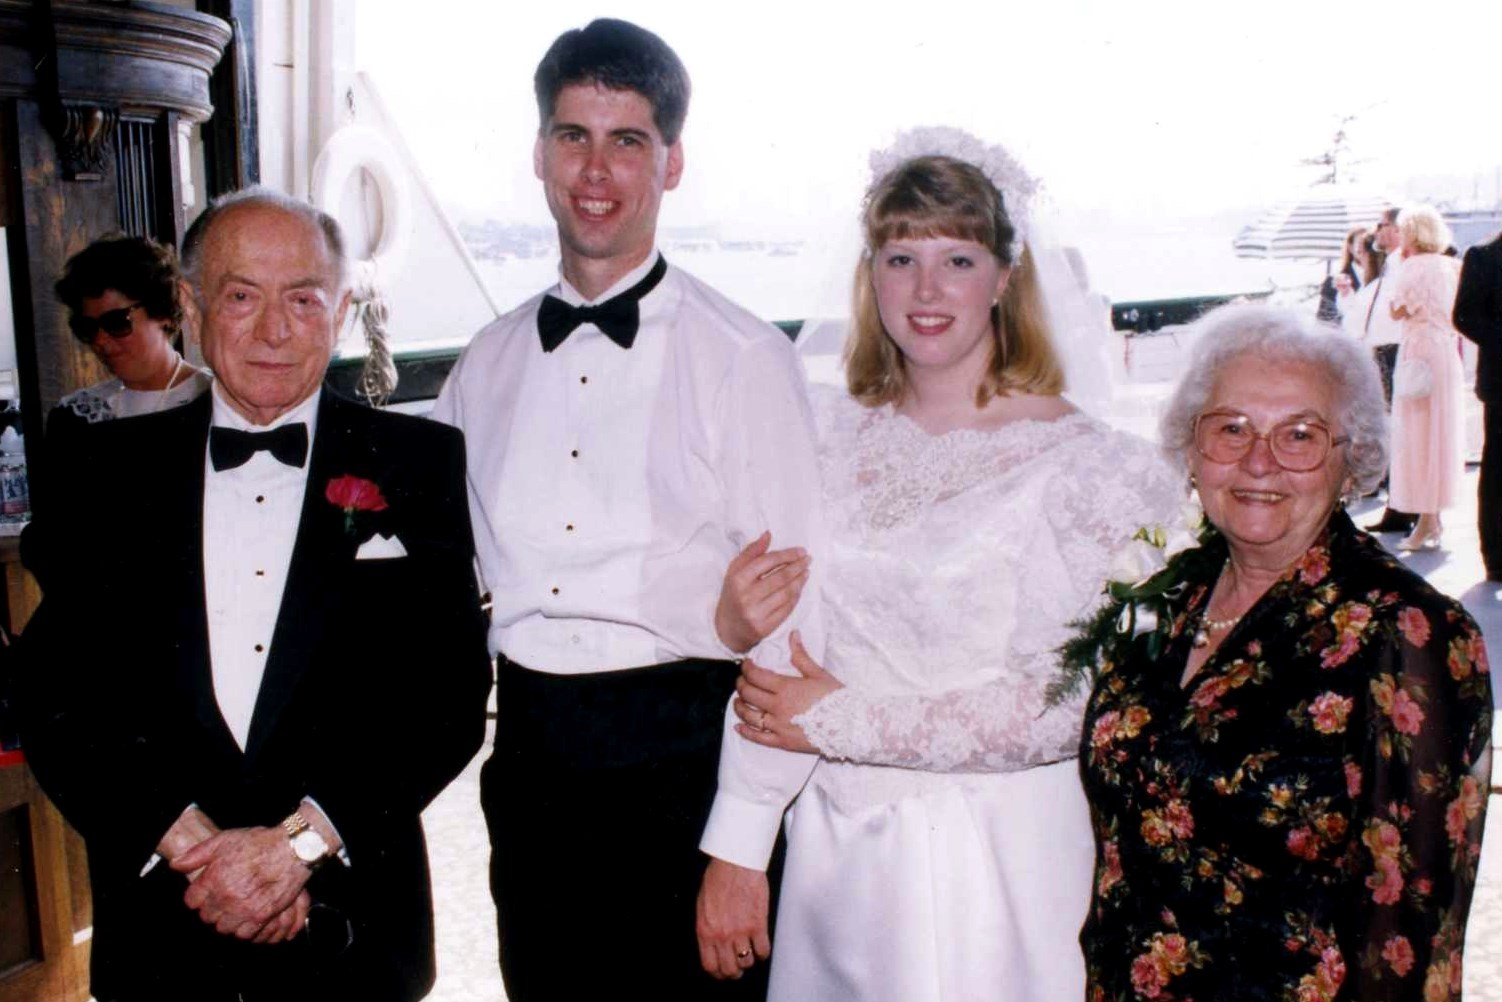 1993, September 6th: Chris & Susan Hancock's wedding